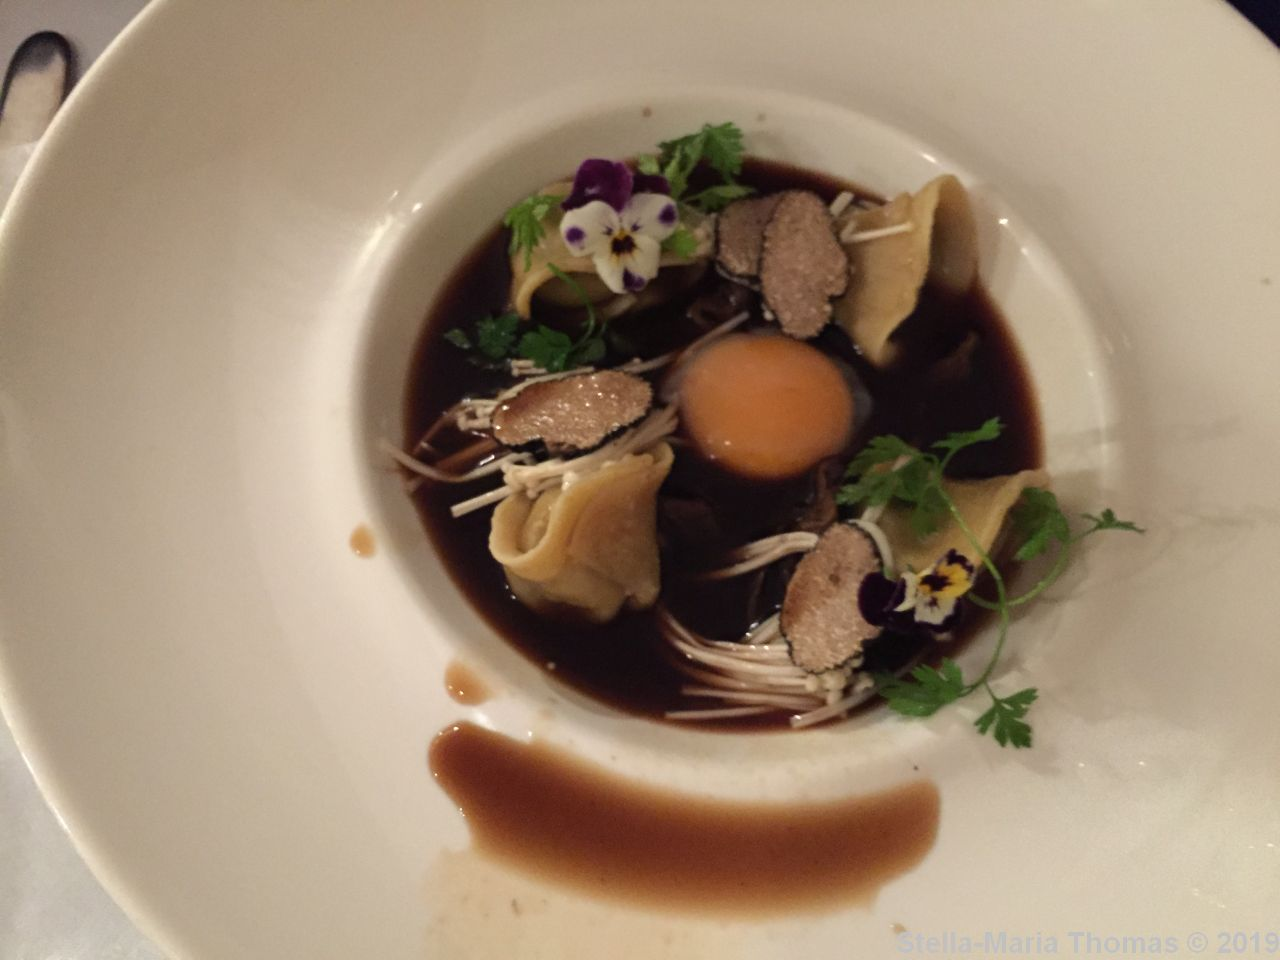 WHITE PEACOCK, MUSHROOM TORTELLINI, PICKLED MUSHROOMS, CONFIT EGG YOLK, TRUFFLE SHAVINGS, SMOKY MUSHROOM BROTH 006